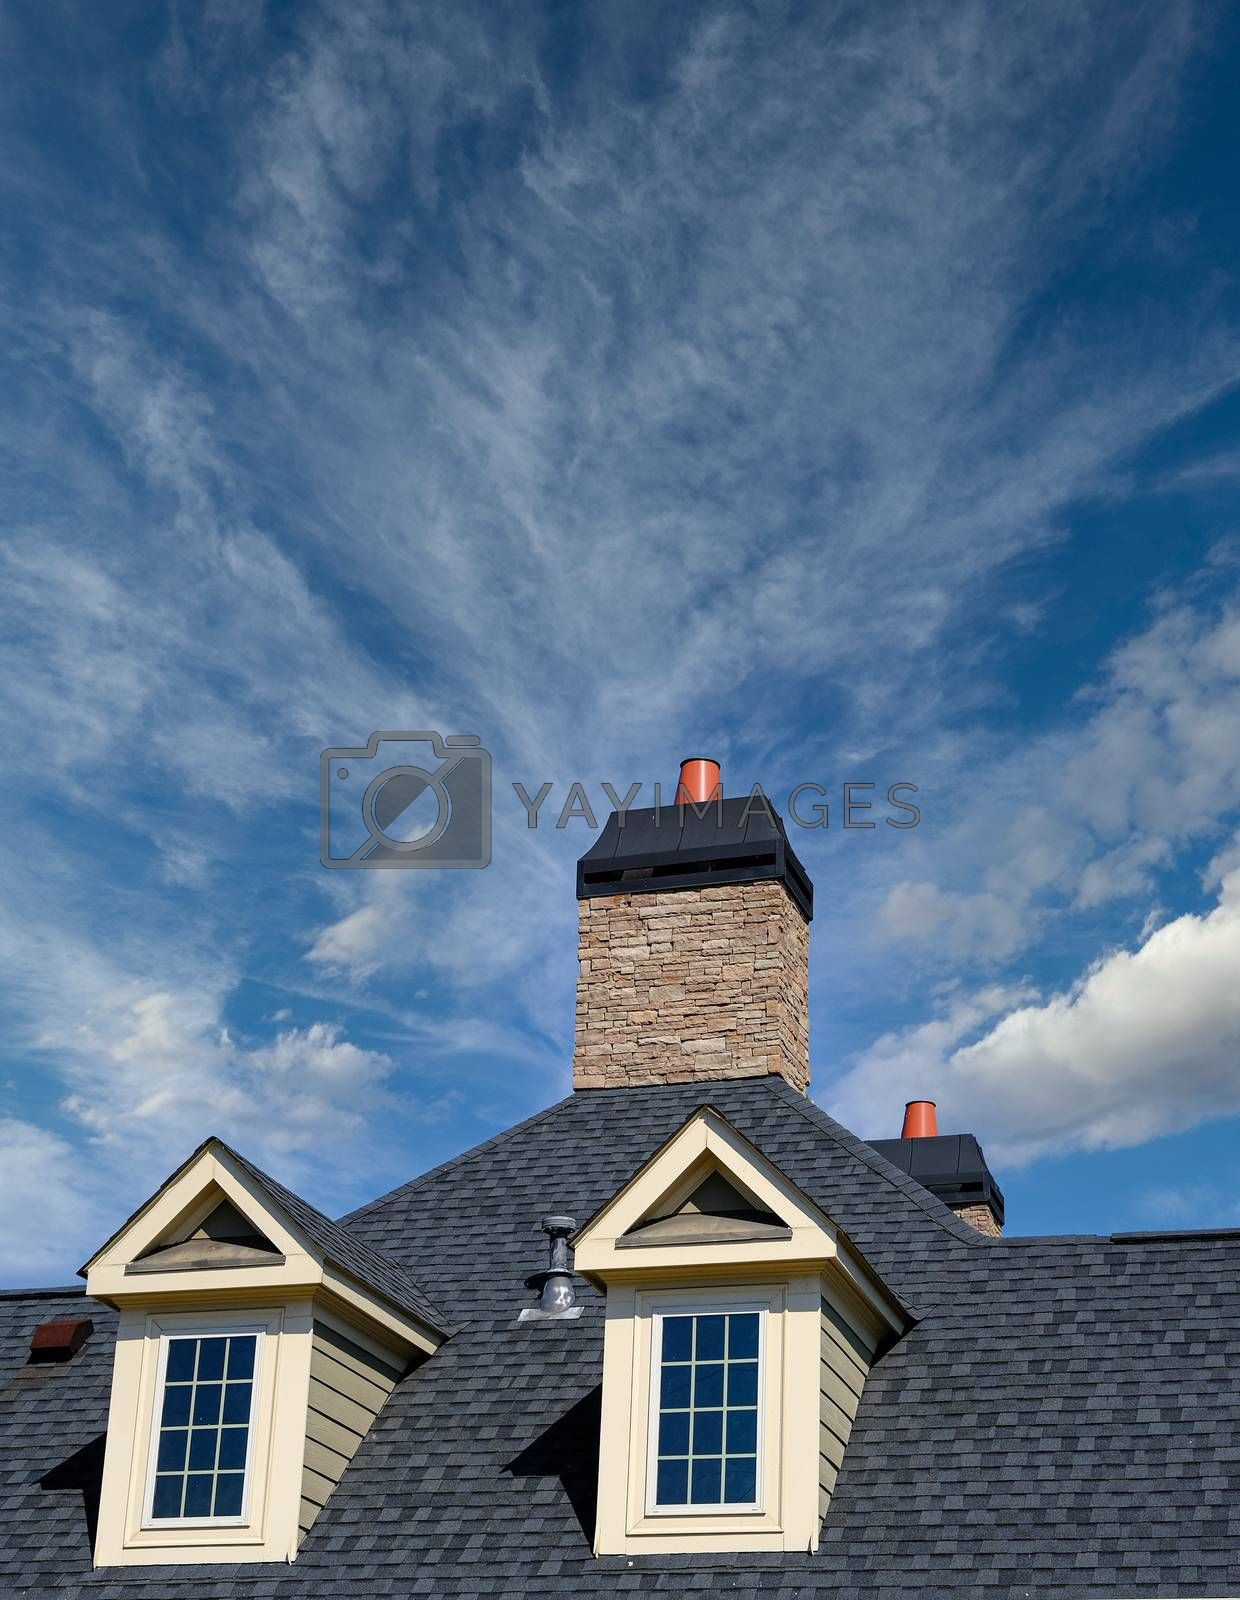 Dormers and Stone Chimney on House with Copy Space